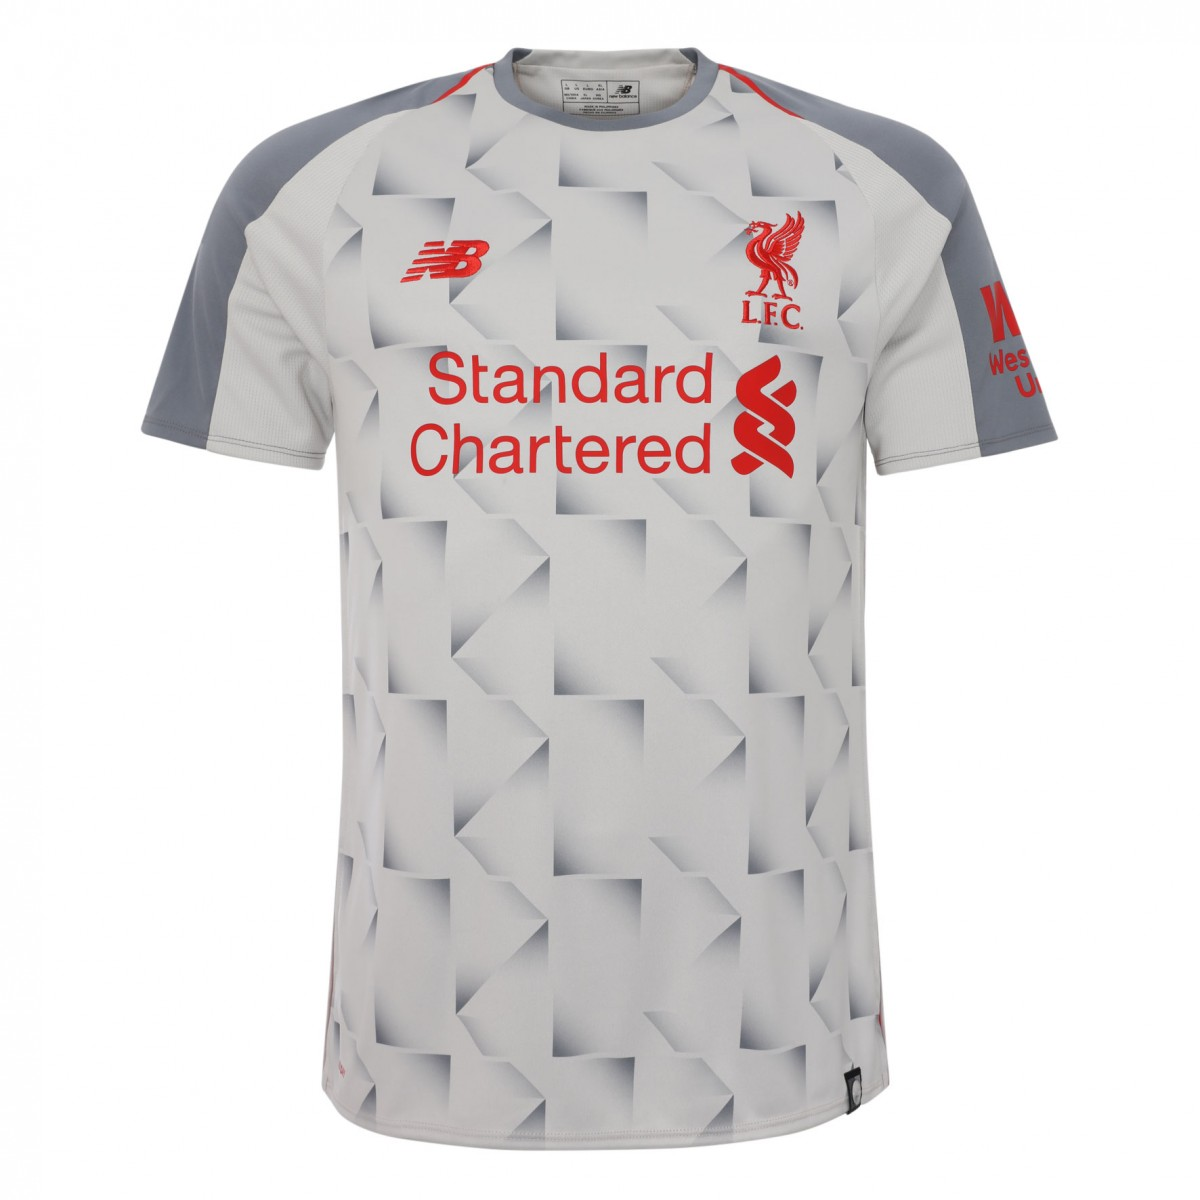 5979620a16e ... Liverpool 2018 19 New Balance Home kit · Click to enlarge image  liverpool 18 19 new balance third kit a.jpg ...